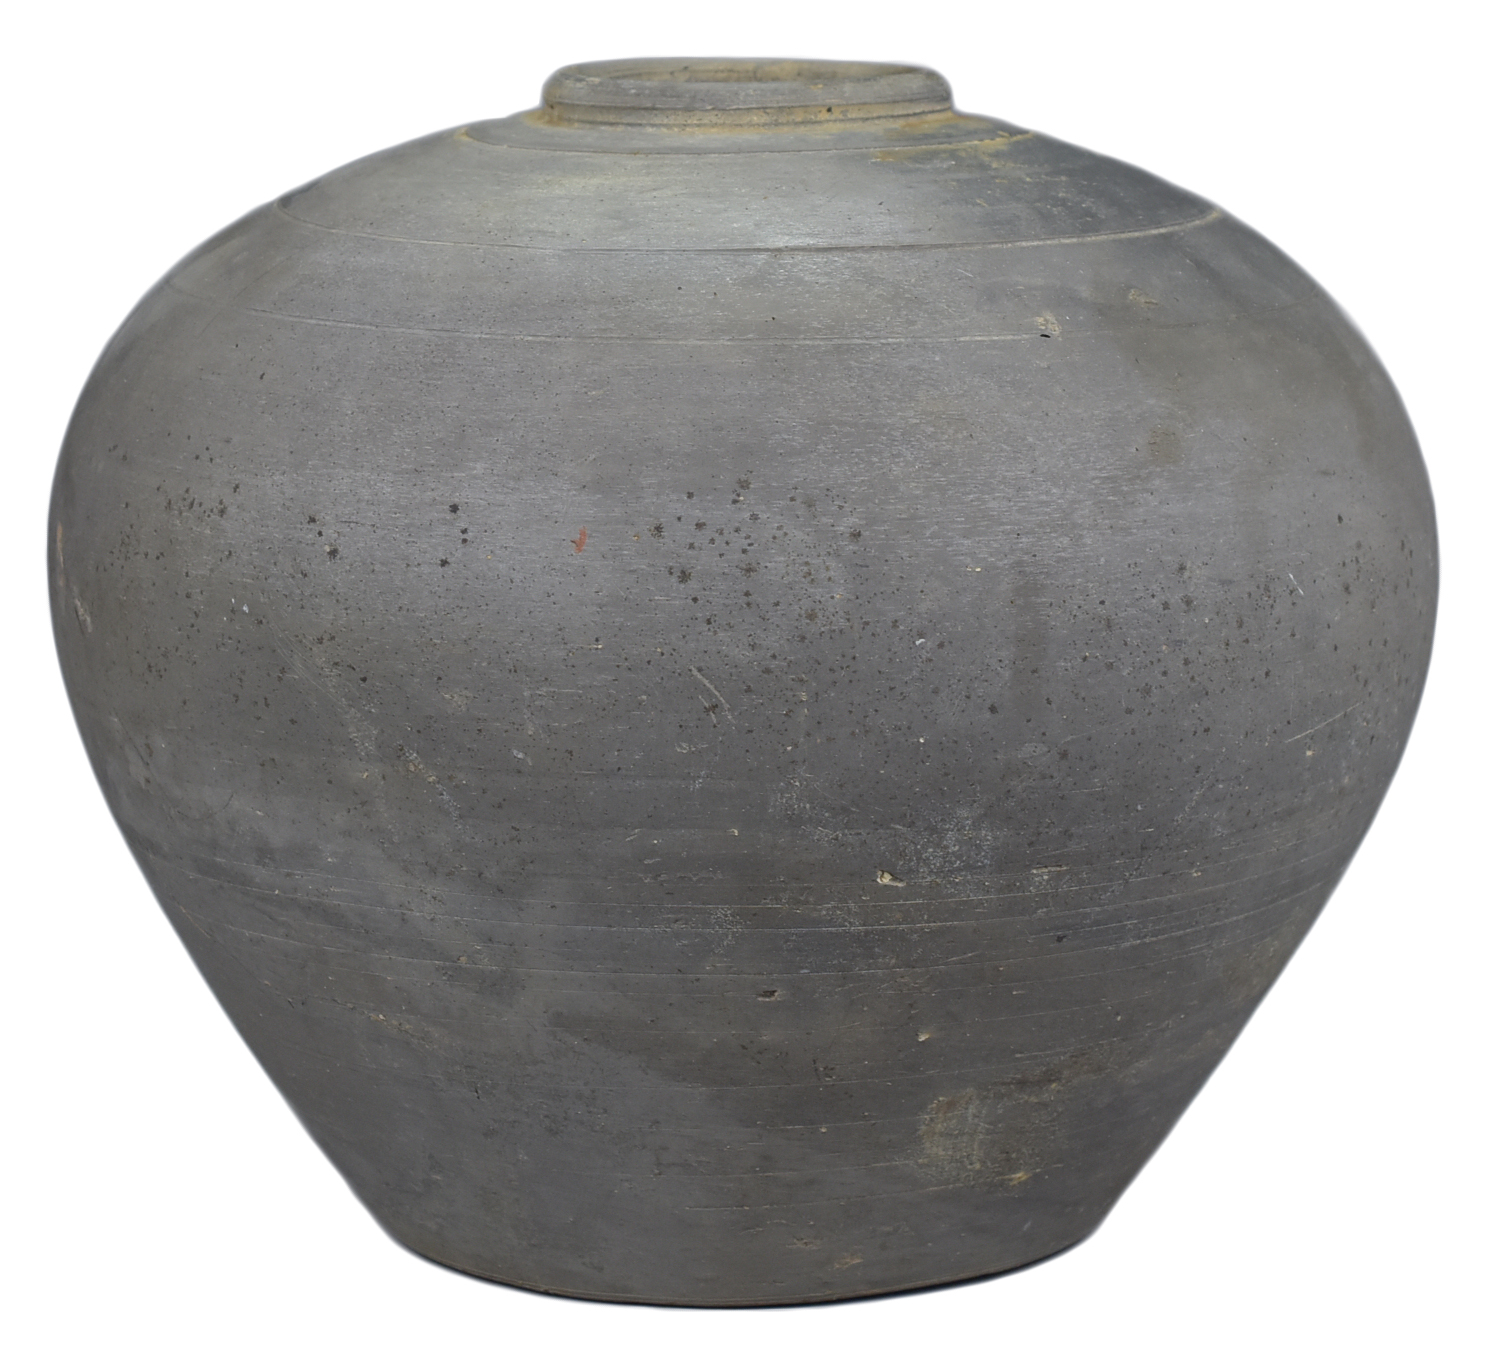 Lot 55 - A Fine Chinese Qin / Early Western Han Dynasty Burnished Pottery Jar